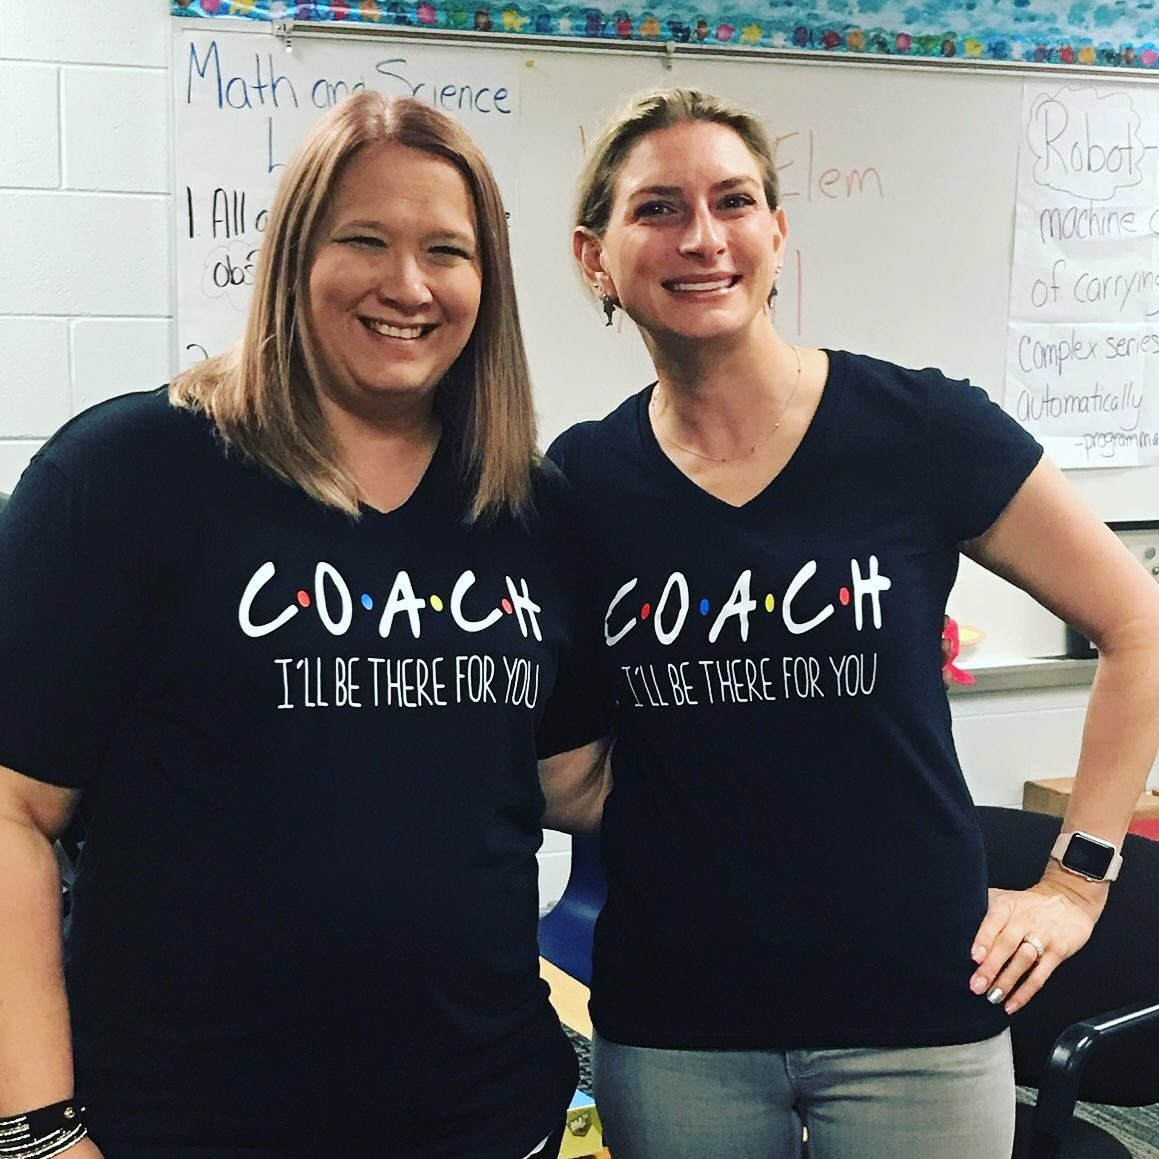 @Ventura_Tigers is a GREAT place to work! My fabulous reading coach Jennifer Bundy got us these shirts. Her support to our students & teachers is second to none! I love working with her #SDOCGoodToGreat #MathScienceCoach #ReadingCoach #Friends #IllBeThereForYou #Coachpic.twitter.com/j9jQcNOWTw